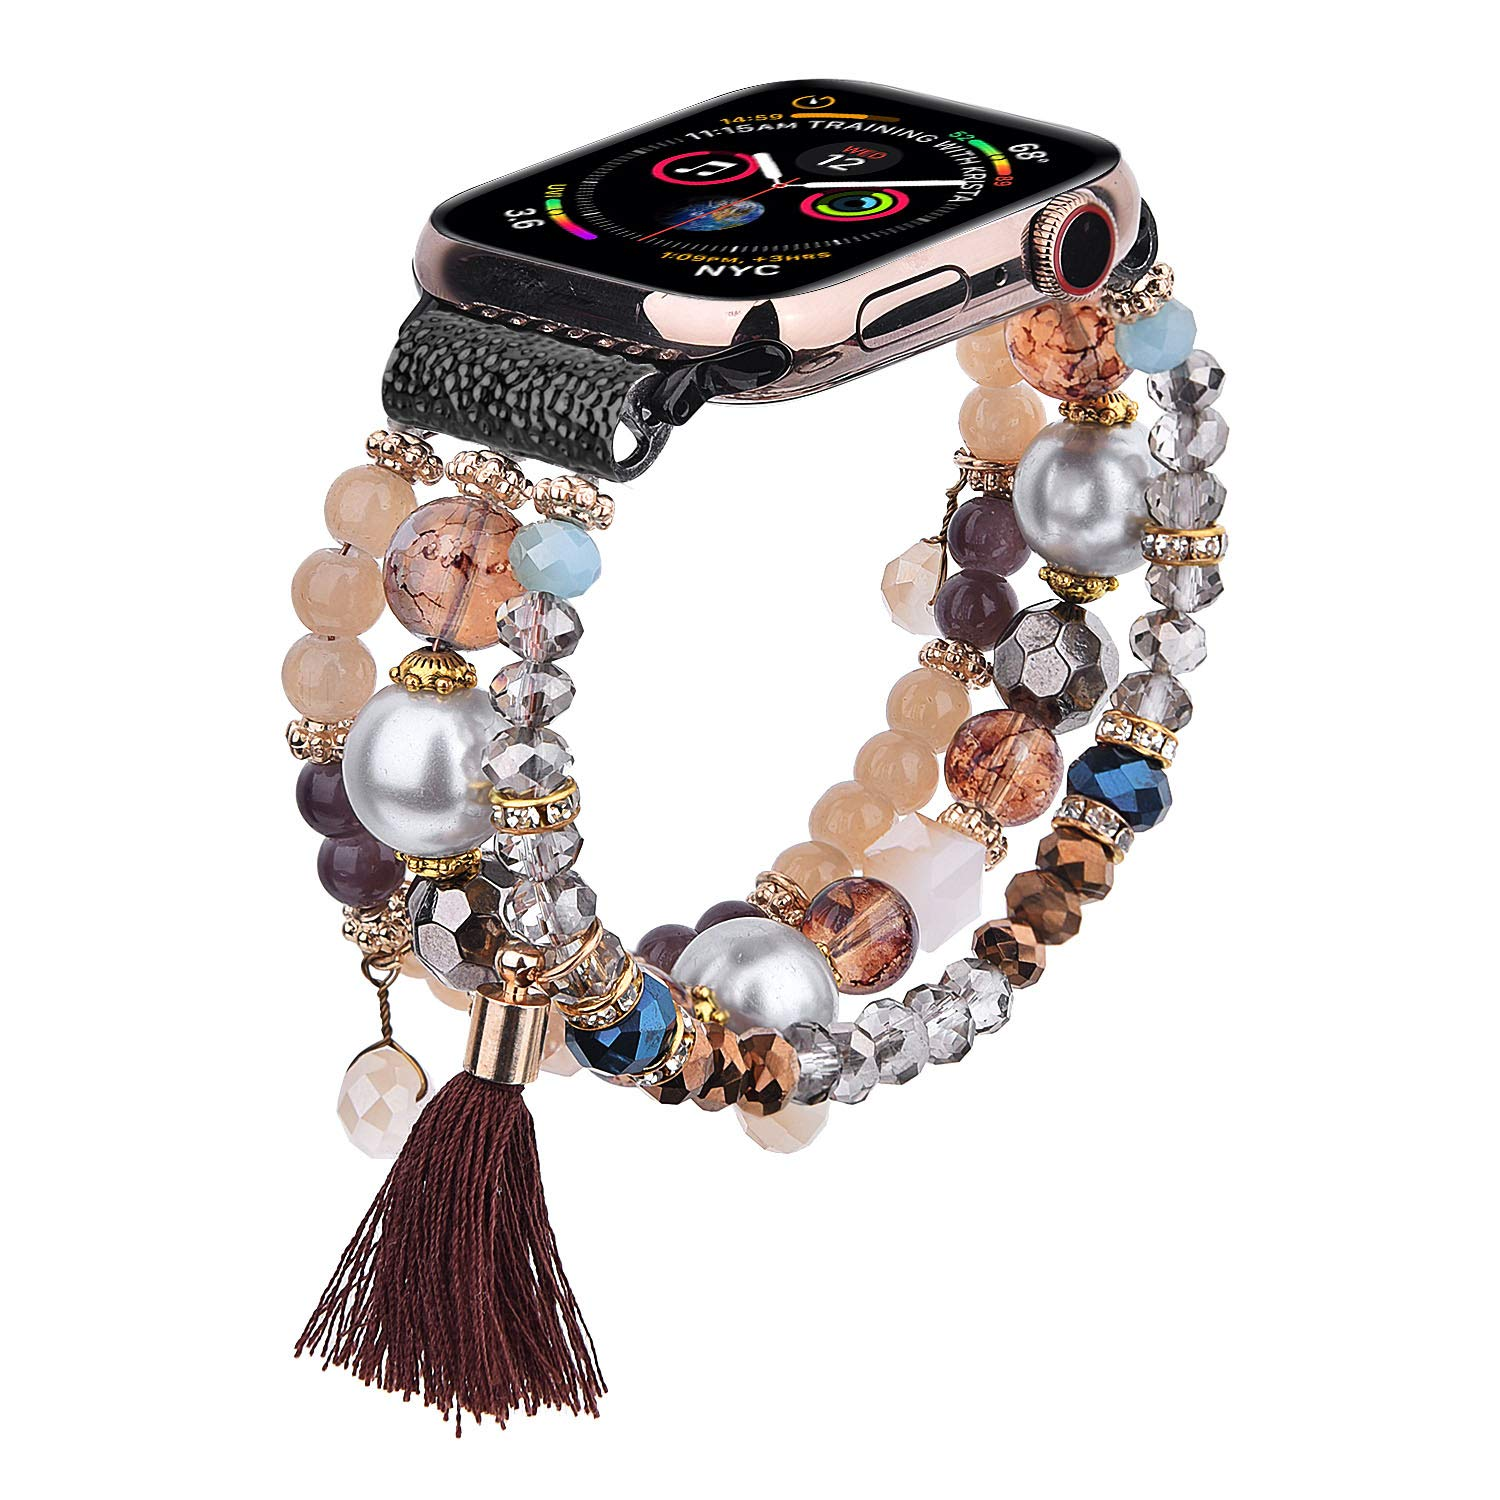 CAGOS Bracelet Compatible for Apple Watch Band 40mm/38mm Women Girl, Cute Handmade Fashion Elastic Beaded Strap Compatible for iWatch 38mm 40mm 4/3/2/1(Brown, 38mm) by CAGOS